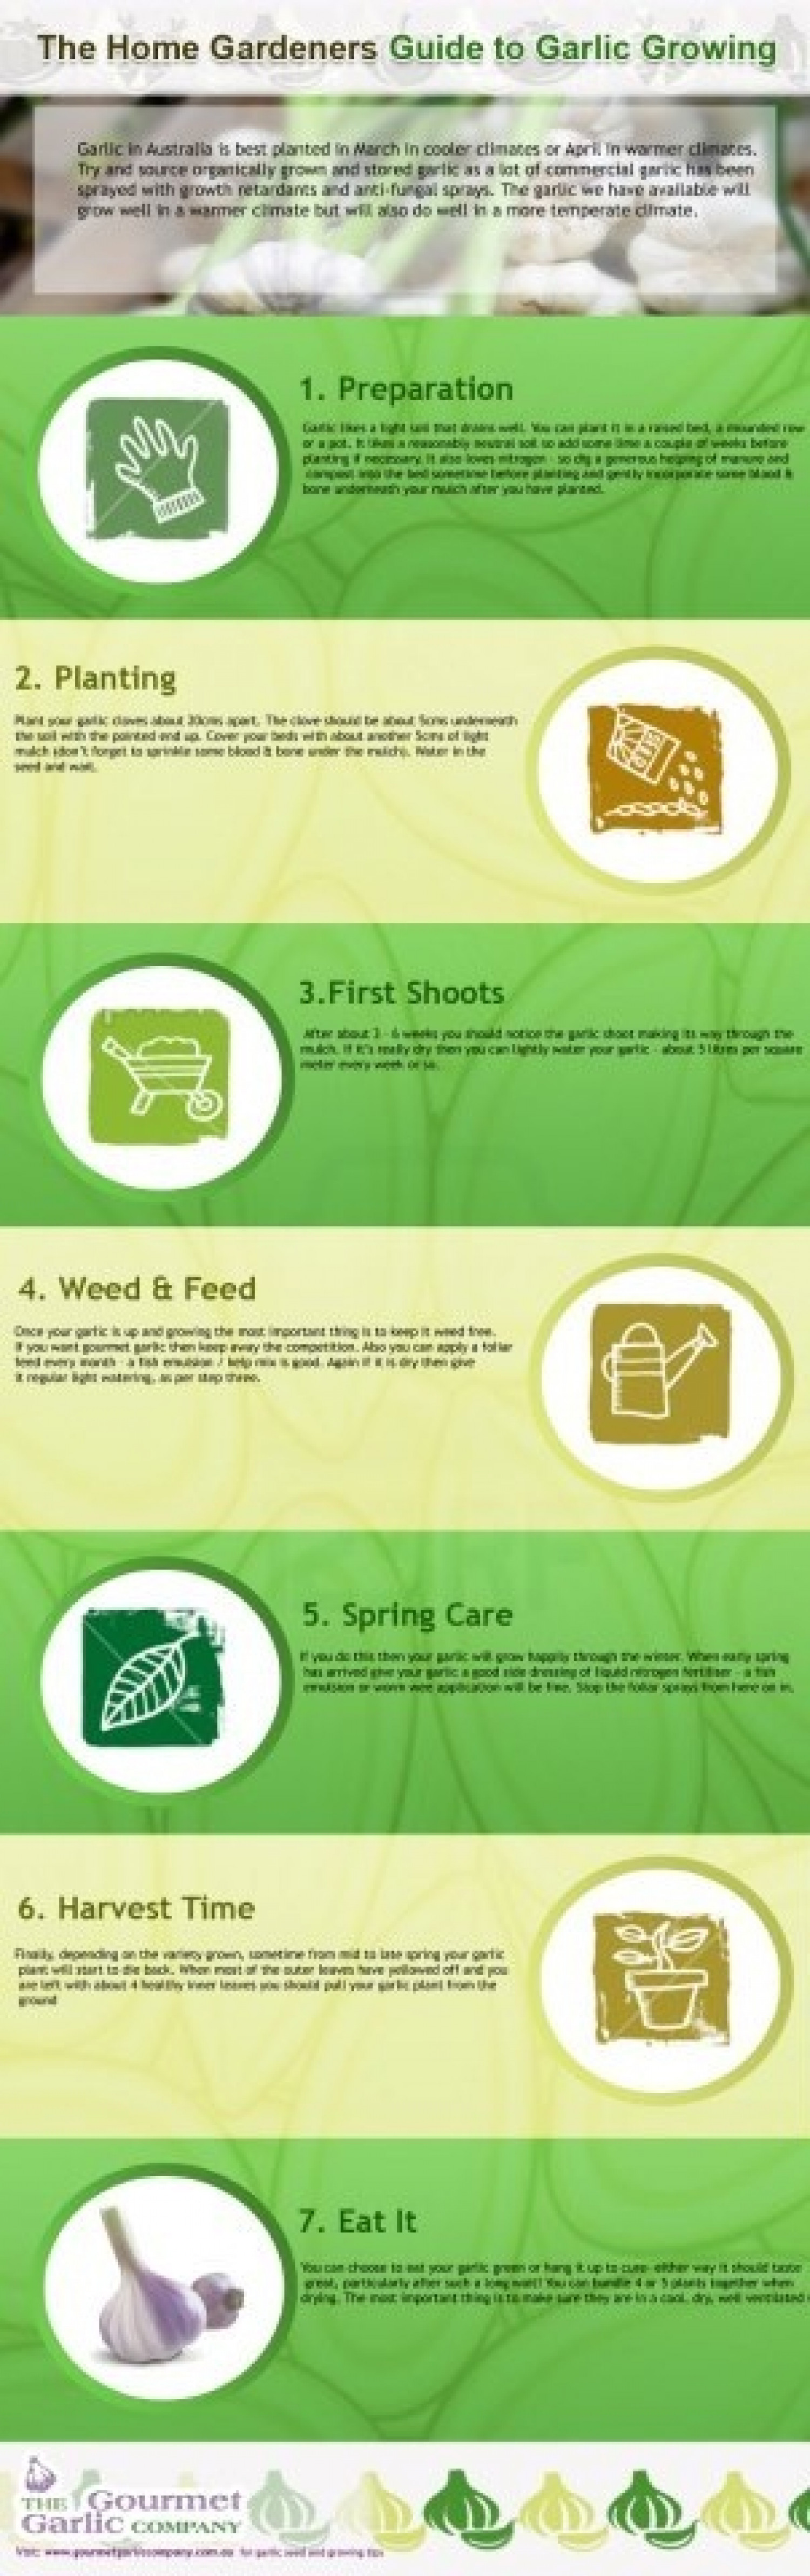 The Home Gardeners Guide to Garlic Growing Infographic